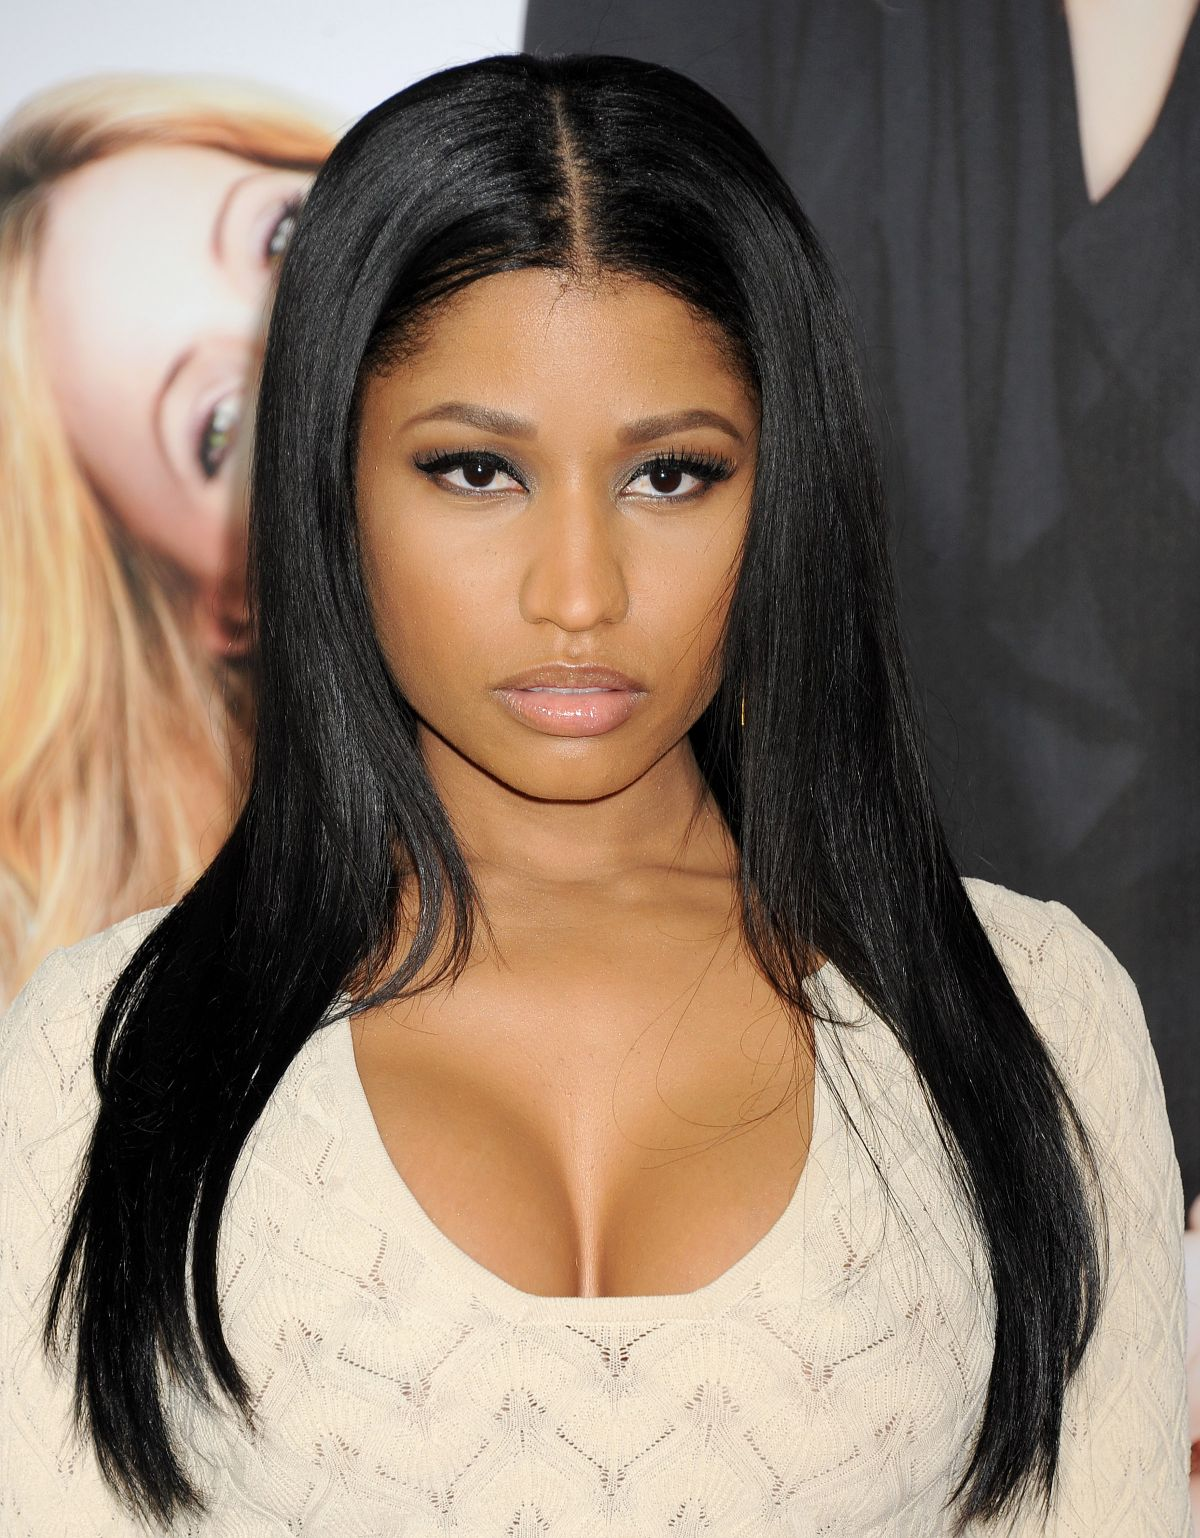 NICKI MINAJ at The Other Woman Premiere in Westwood